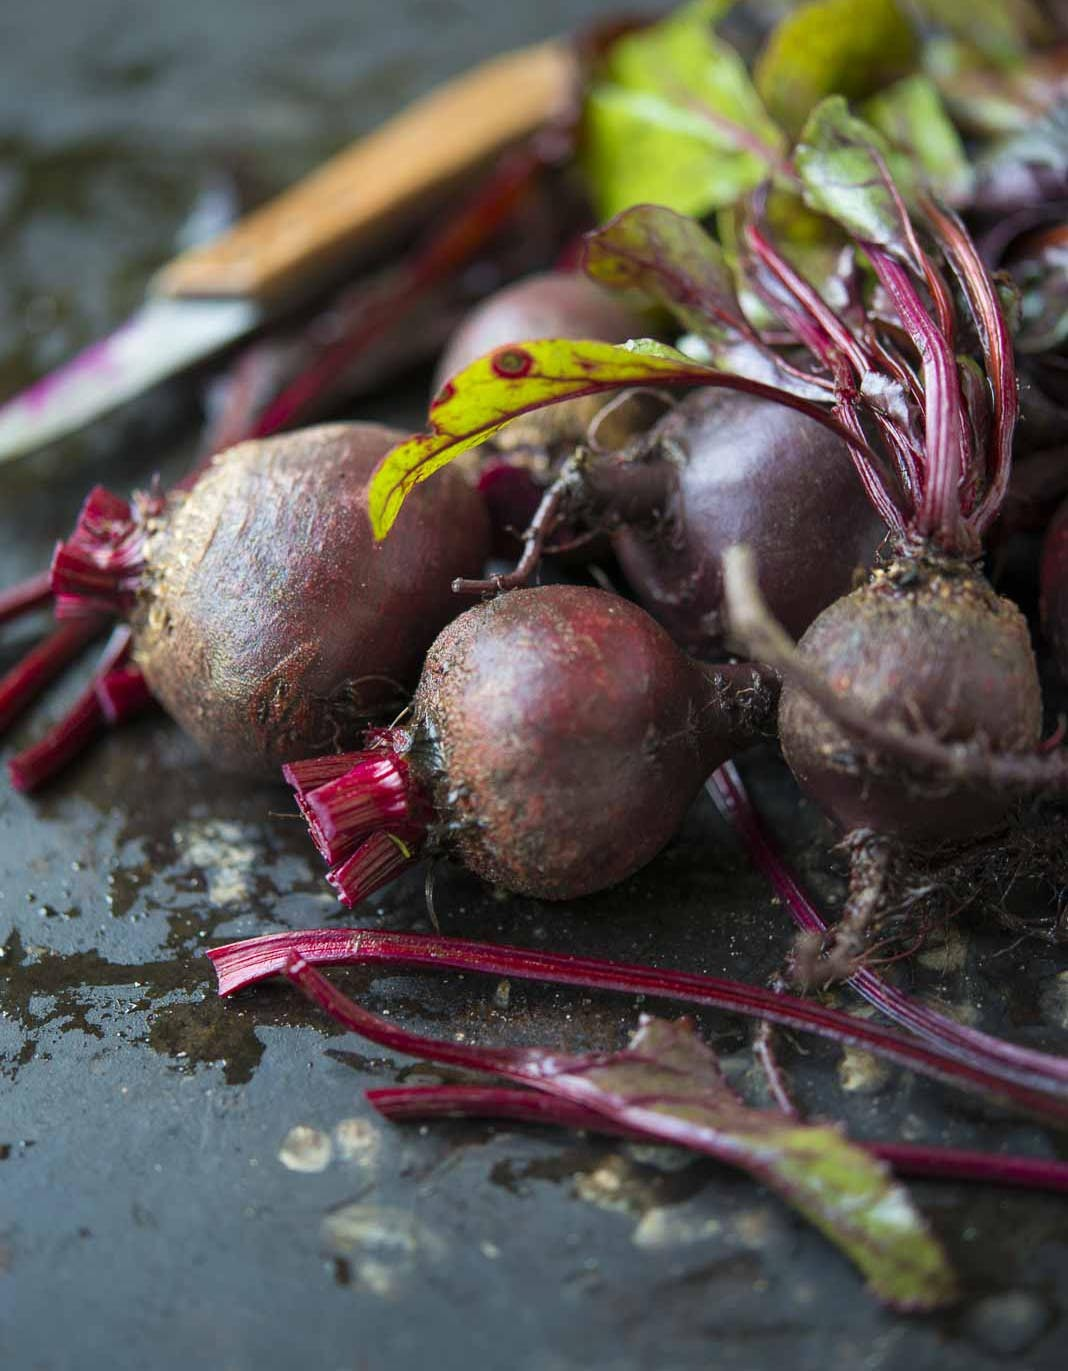 beetroot. best vegetable ever. love the color.